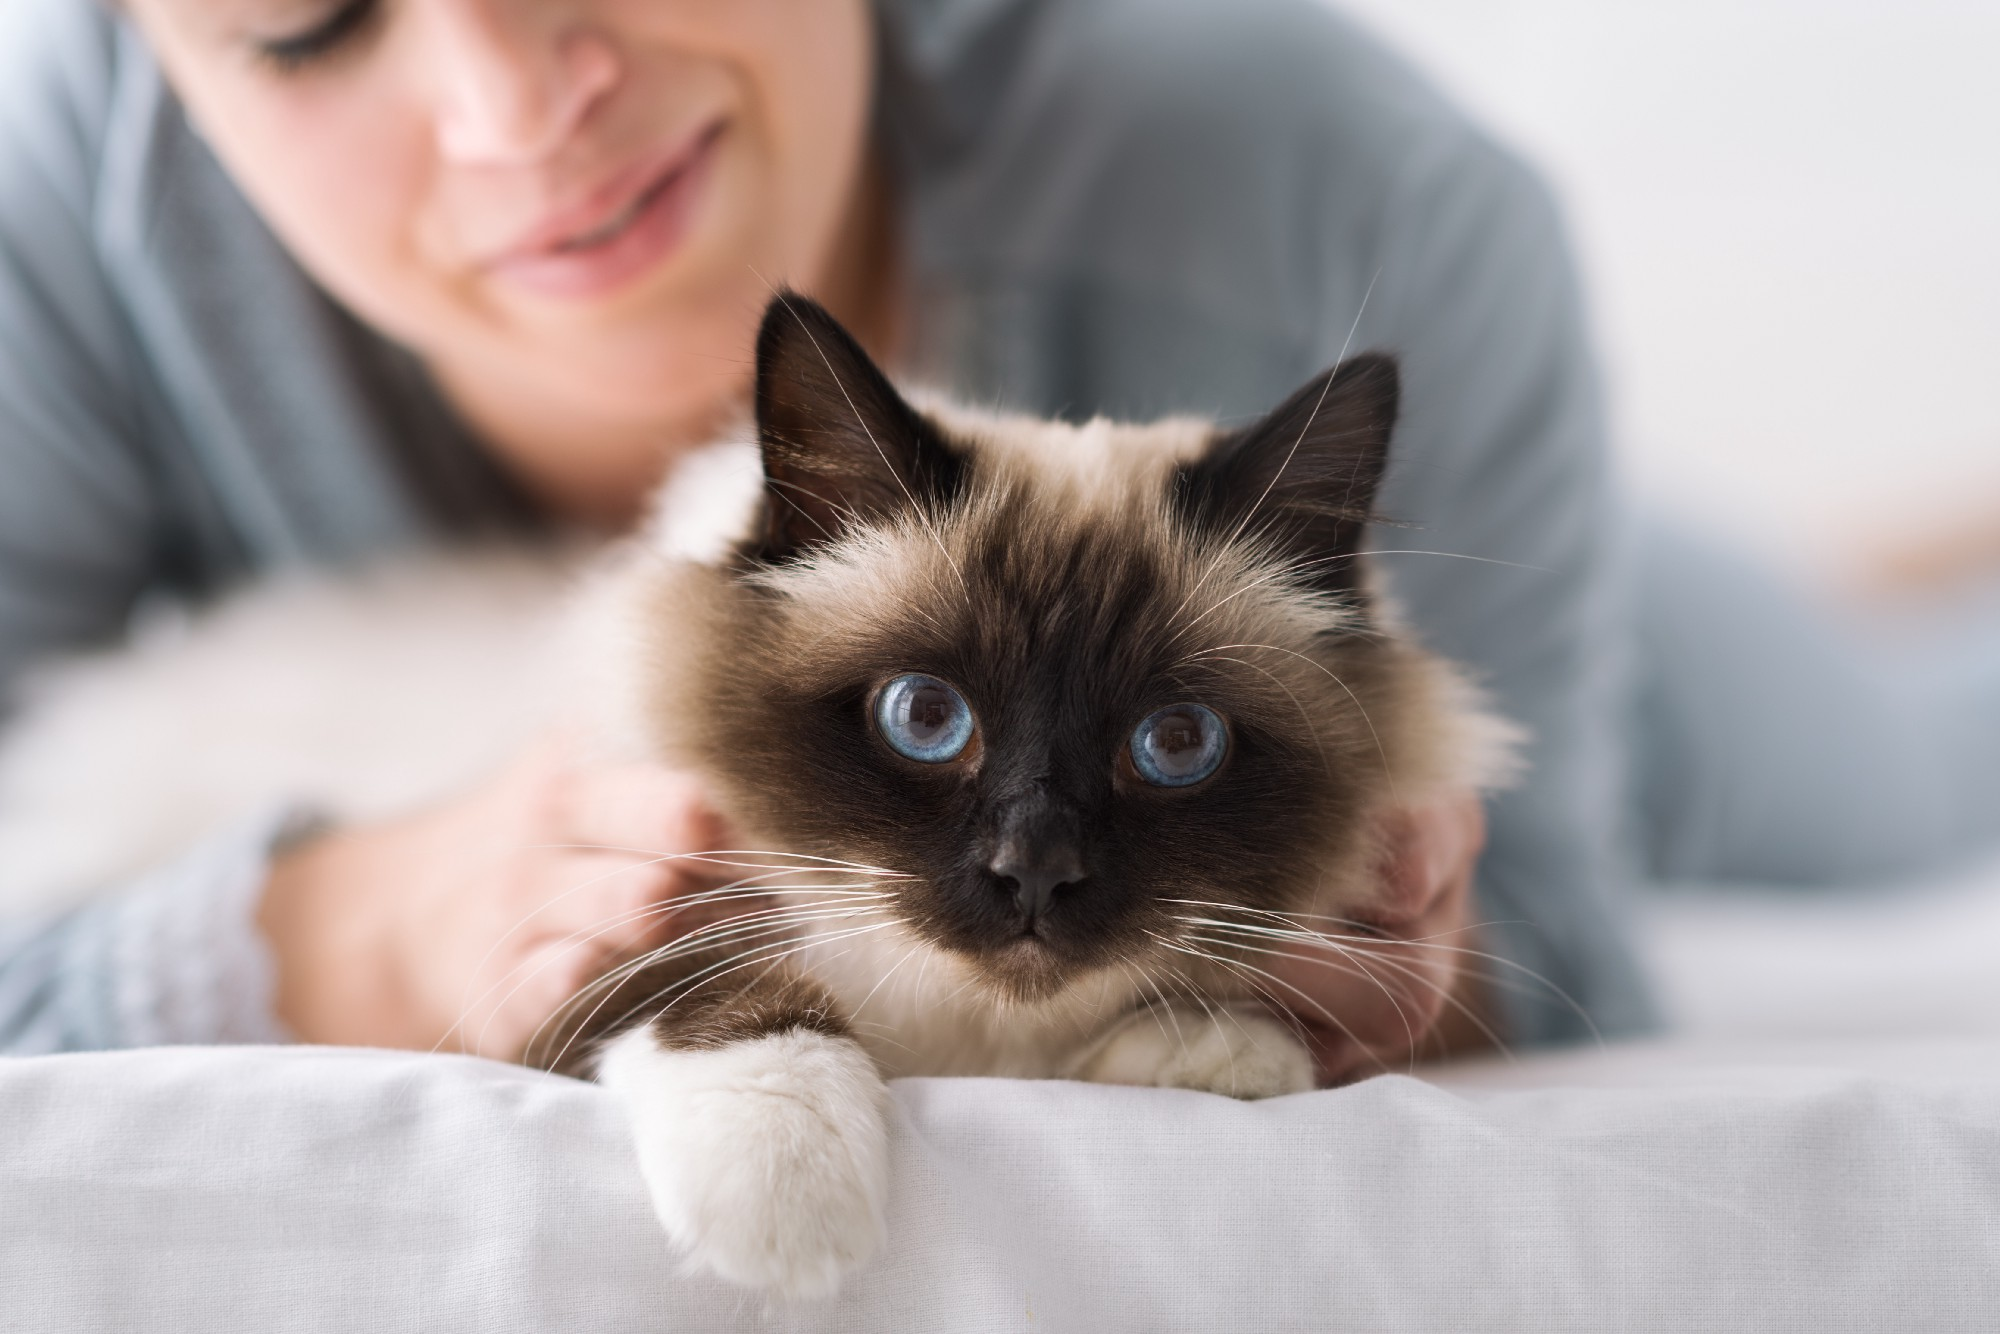 Cat and owner together